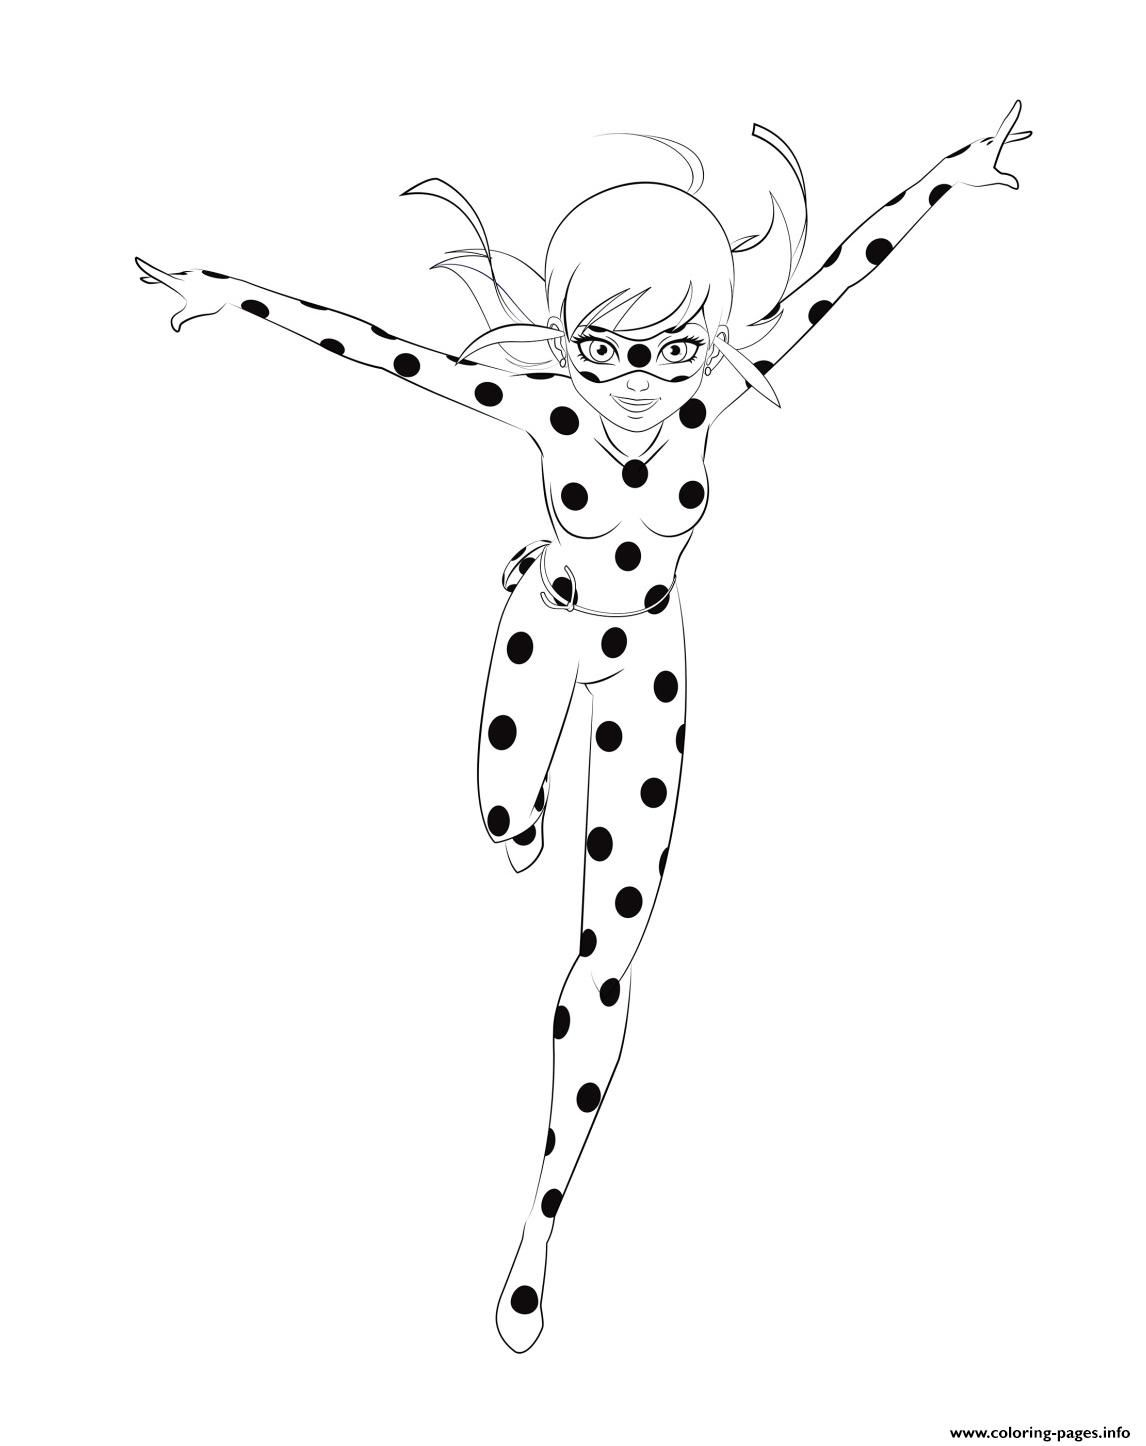 coloring-pages.info miraculous-ladybug-is-running-printable-coloring ...